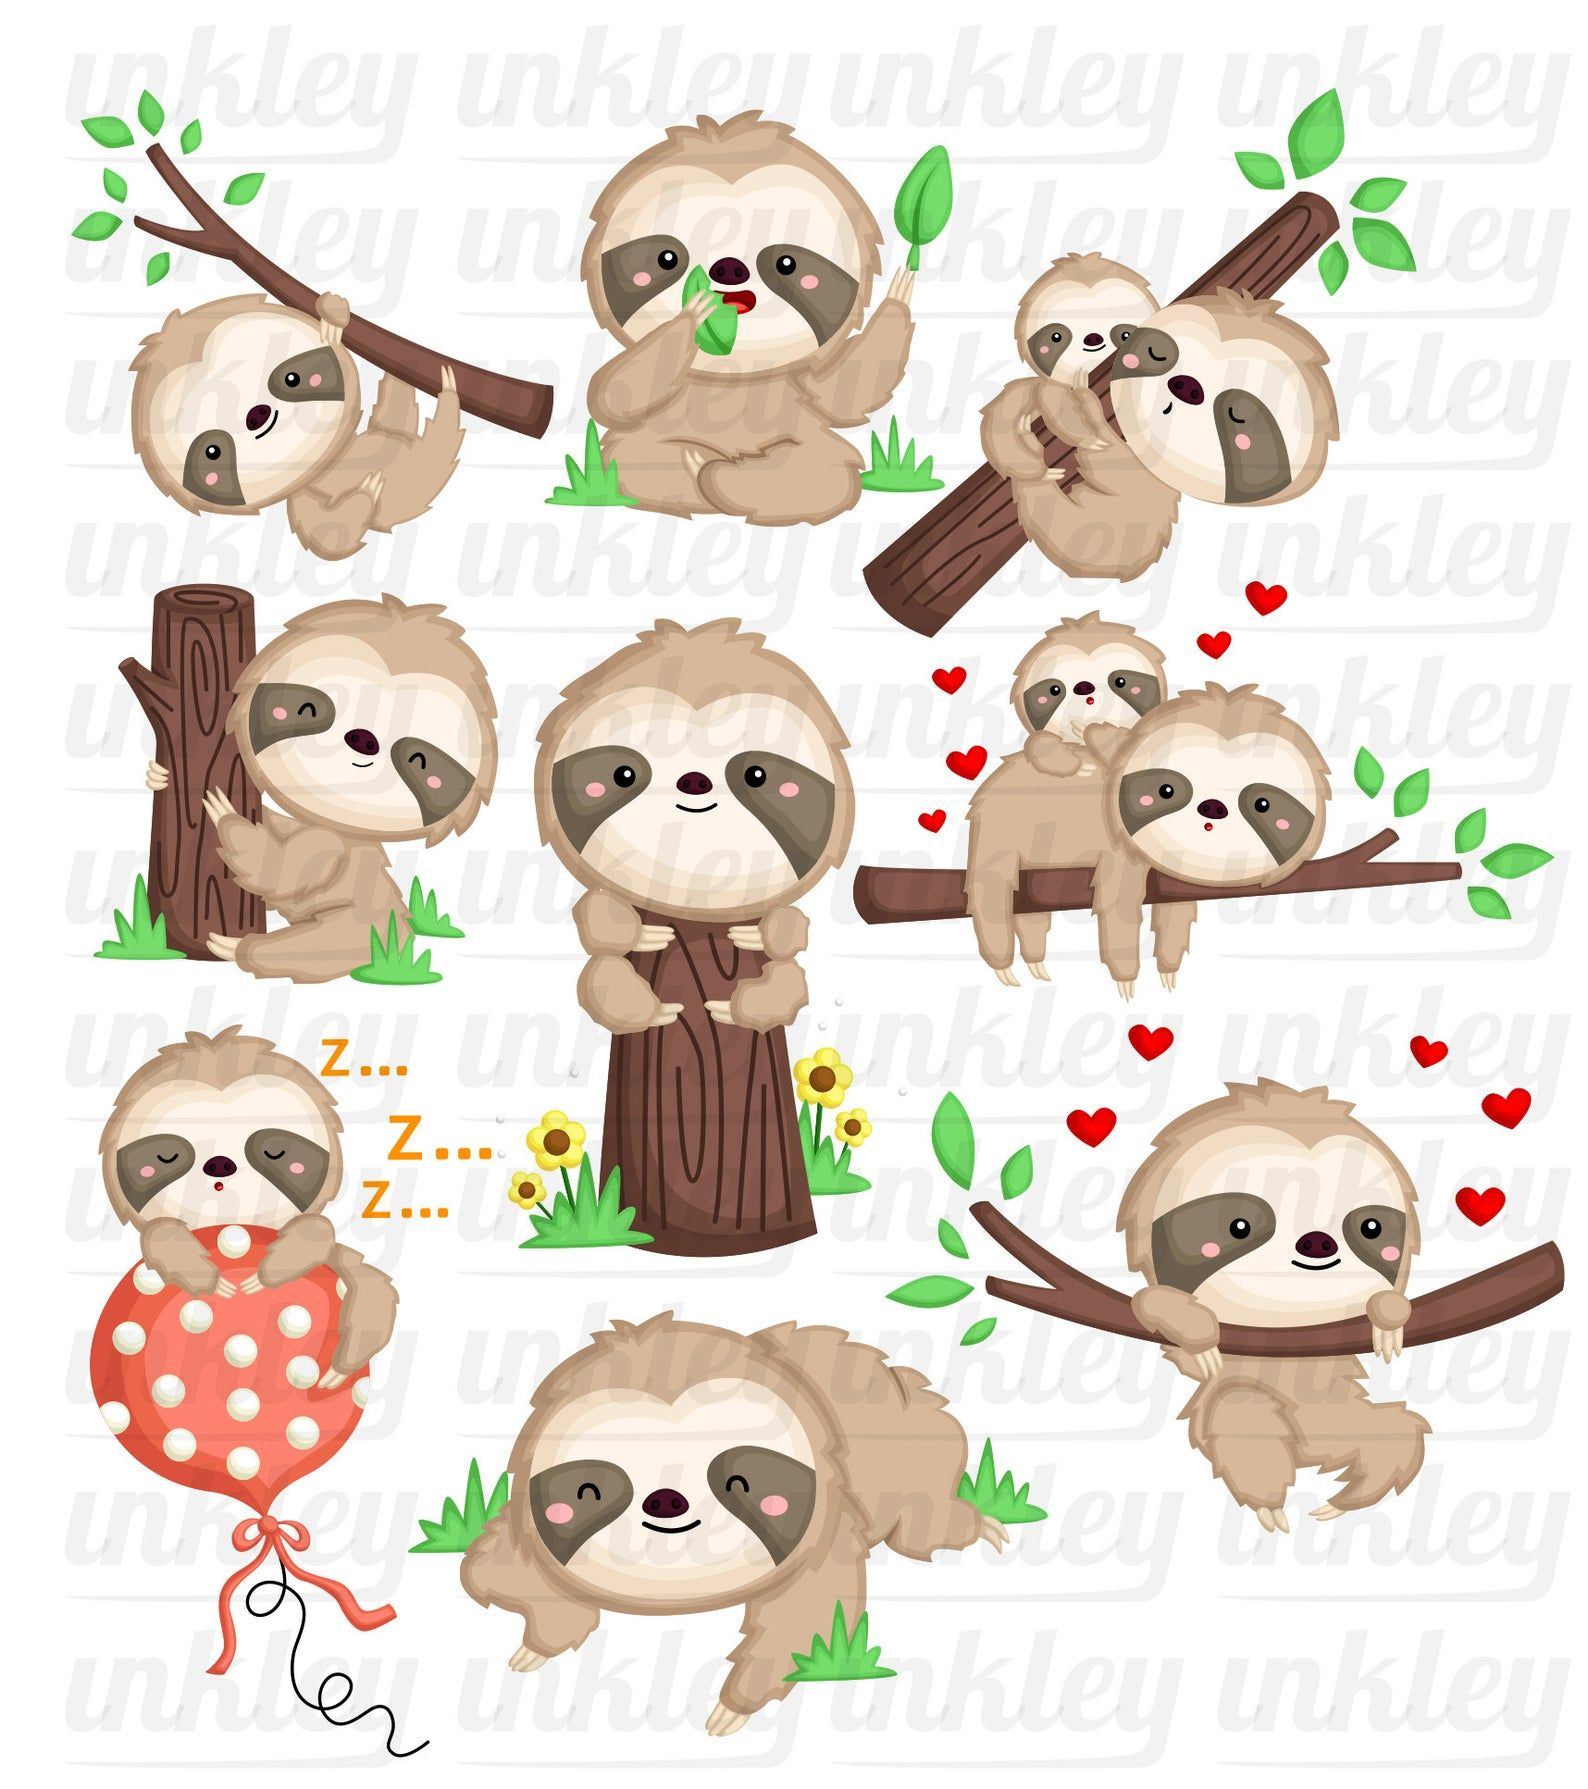 Cute Sloth Clipart Sloth On A Tree Clipart Cute Animal Etsy In 2021 Animal Clipart Free Cute Animal Clipart Animal Clipart